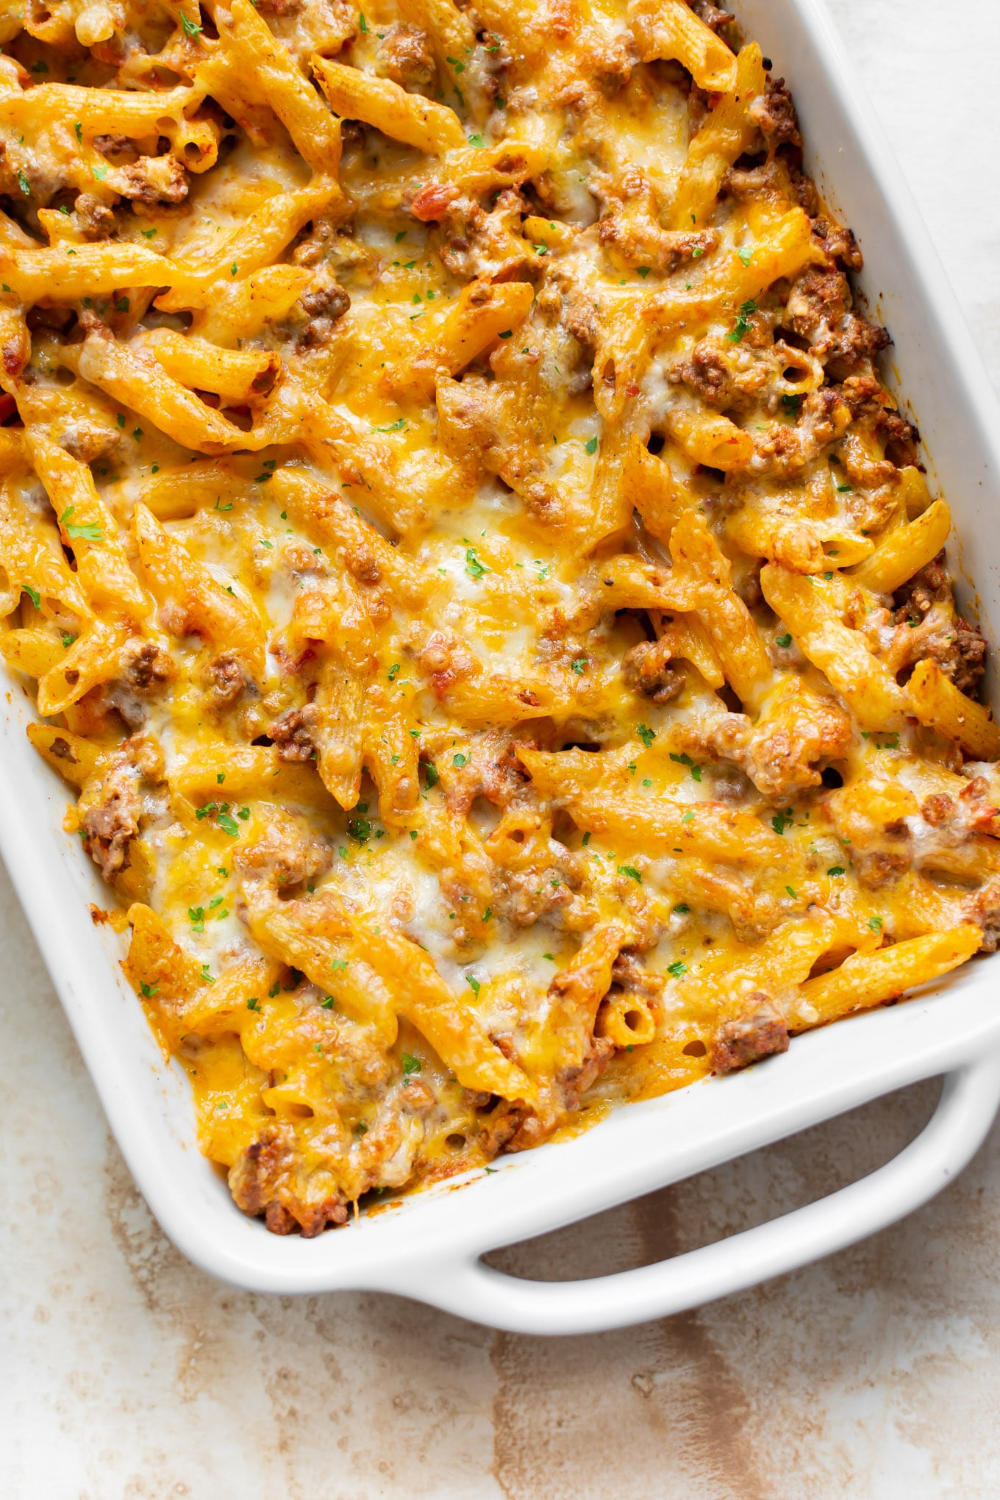 This Is The Best Ground Beef Casserole Recipe You Can Either Use Pasta Or Noodles In 2020 Ground Beef Casserole Recipes Beef Casserole Recipes Ground Beef Casserole